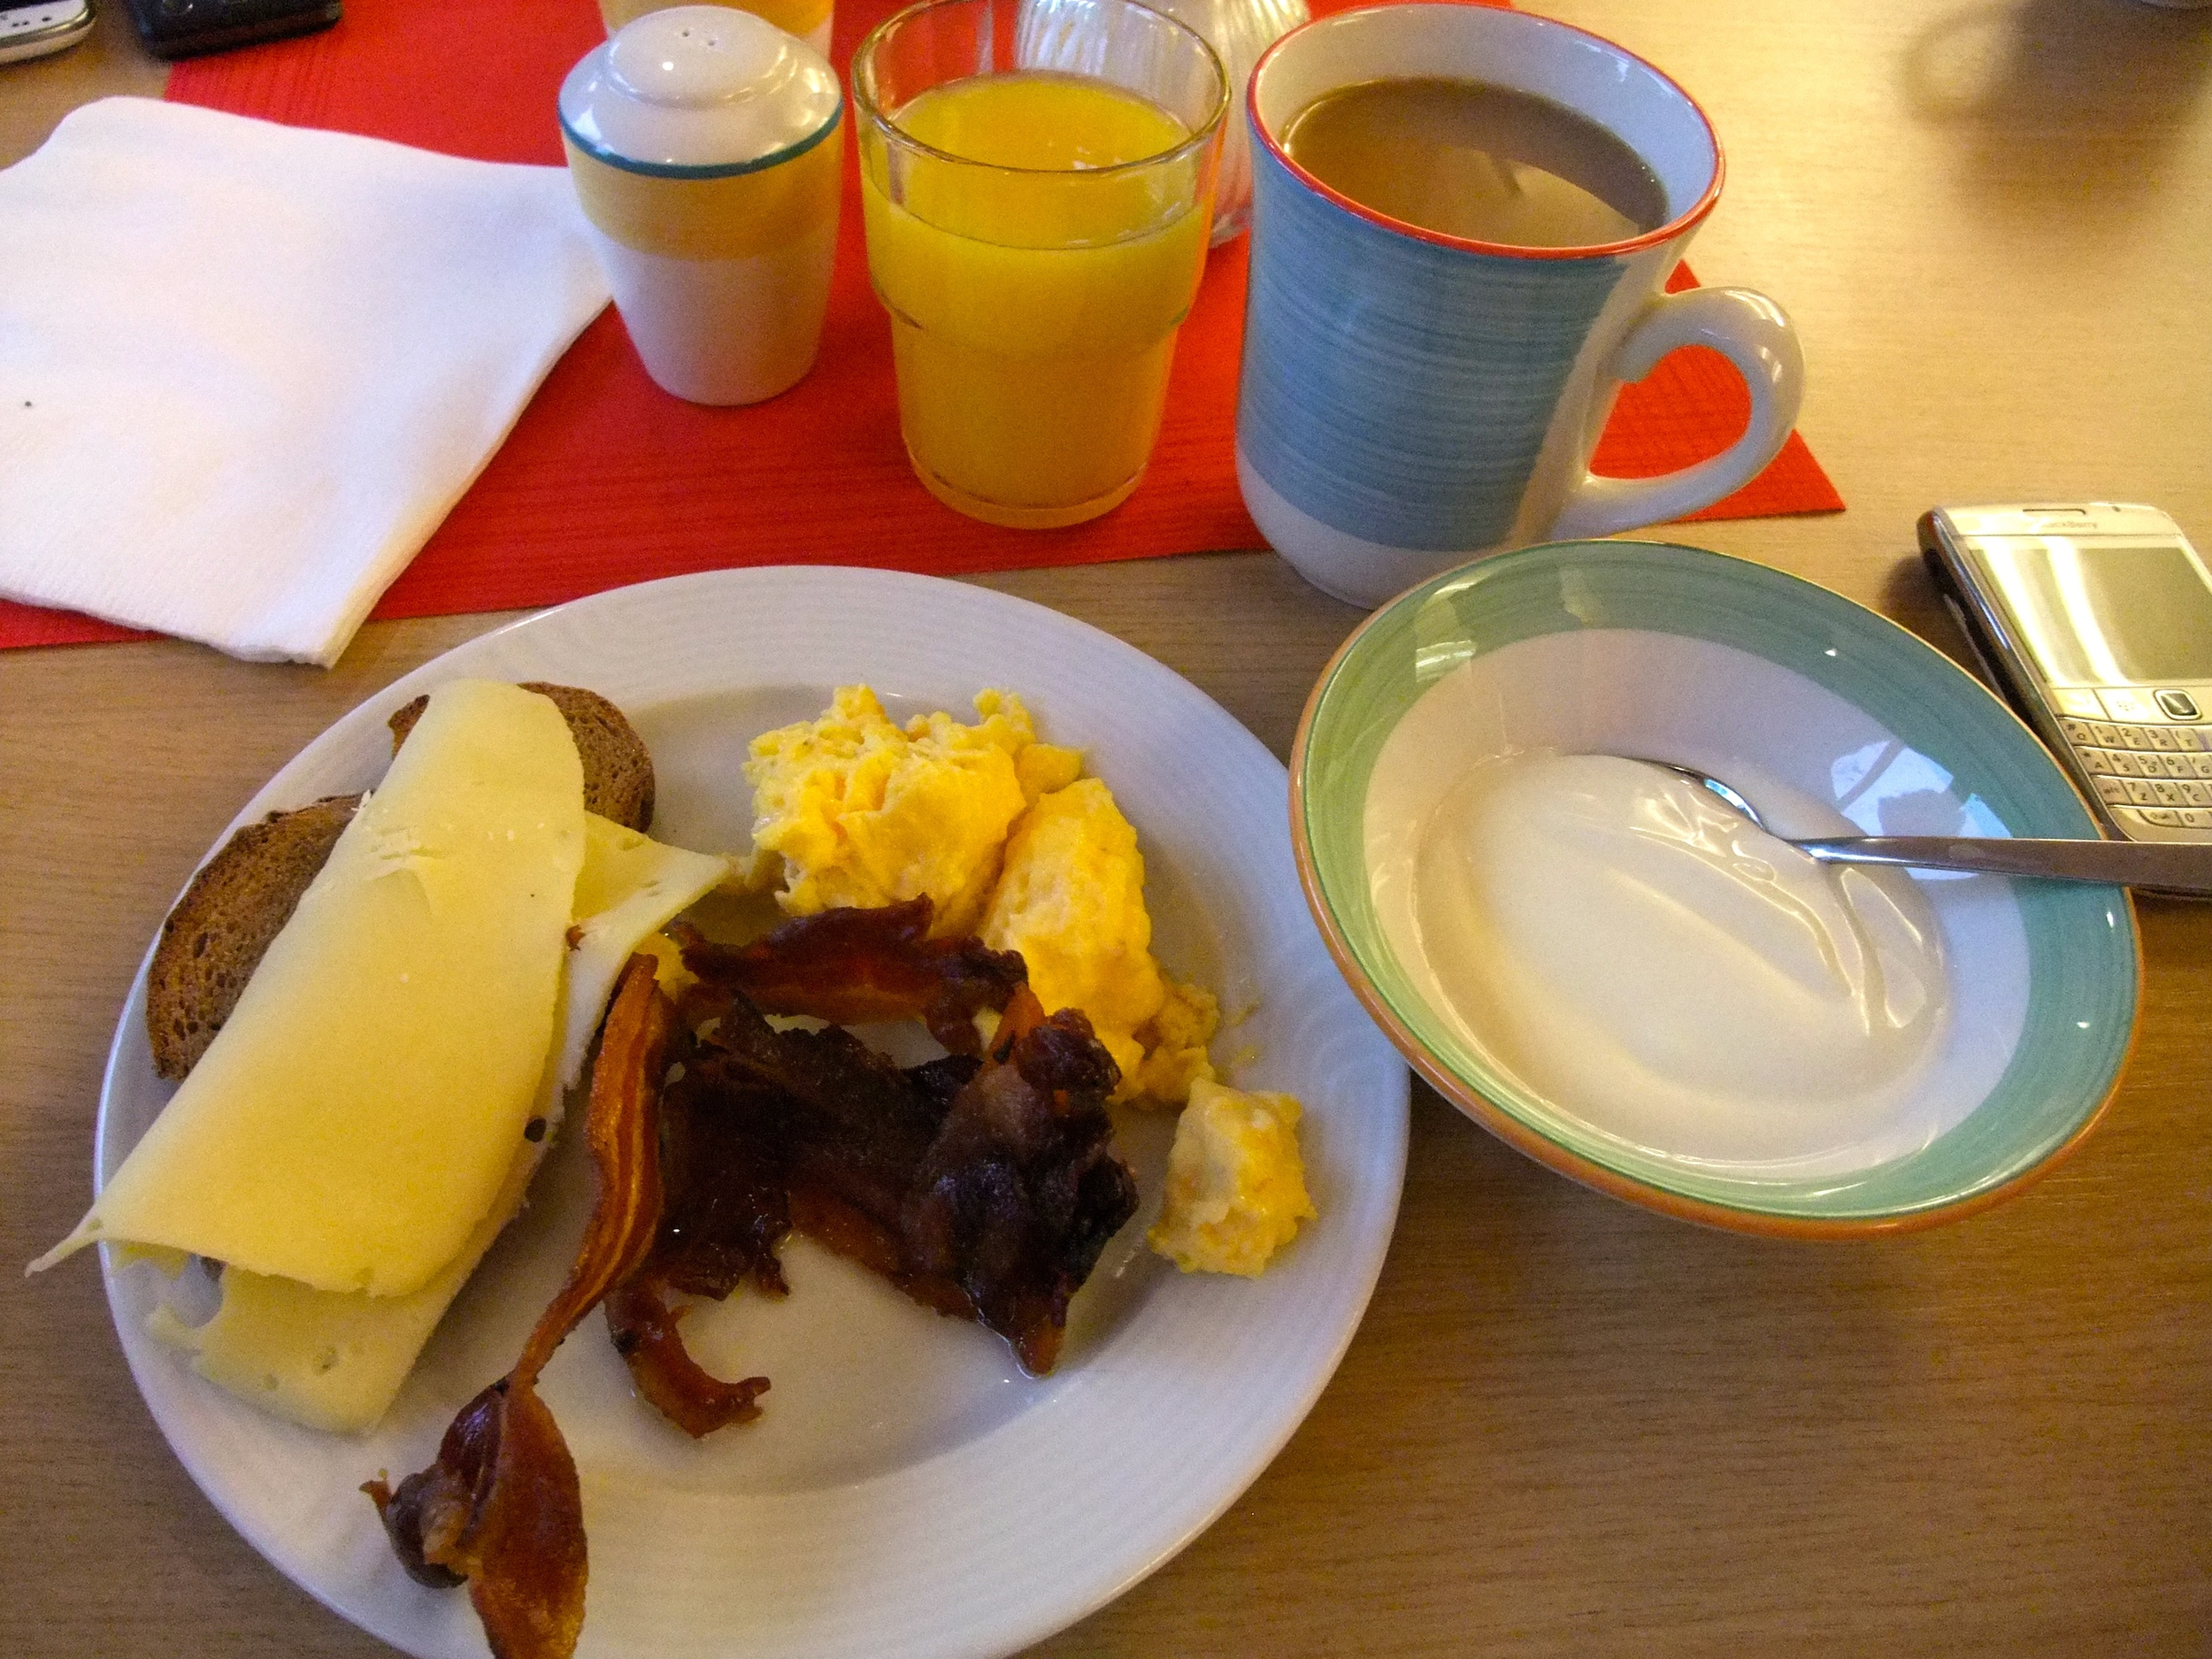 Breakfast of bread, cheese, bacon, eggs, yogurt, coffee, and orange juice